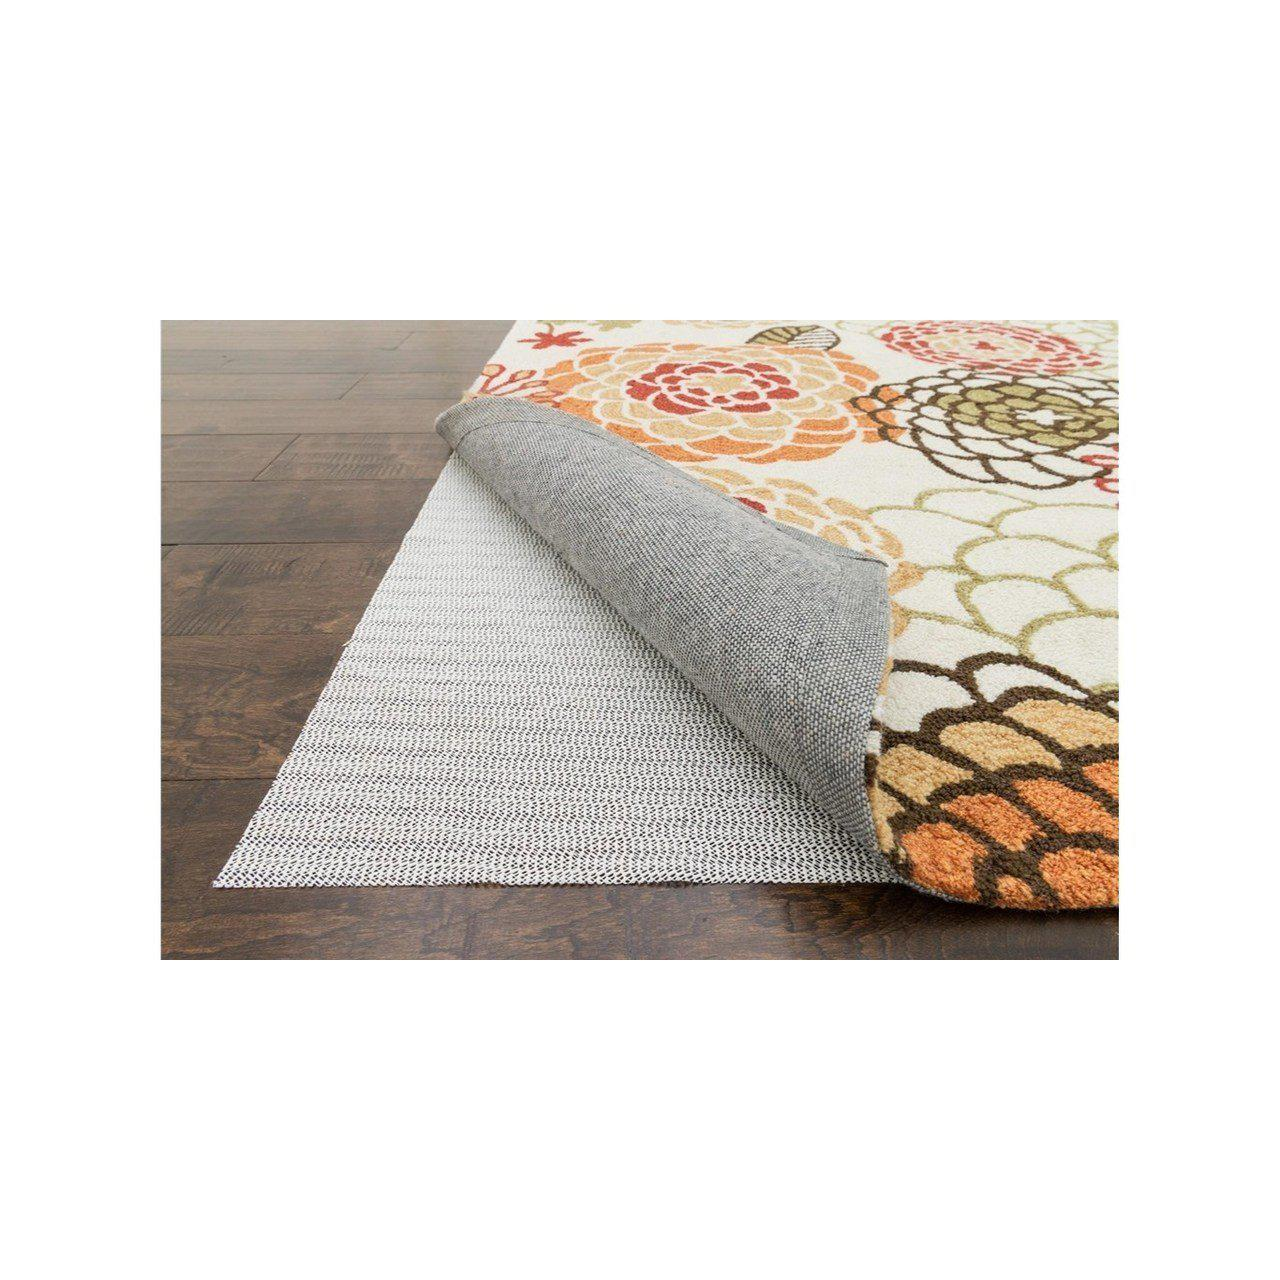 Loloi Secure Grip Rug Pad Collection - PAD02 BEIGE